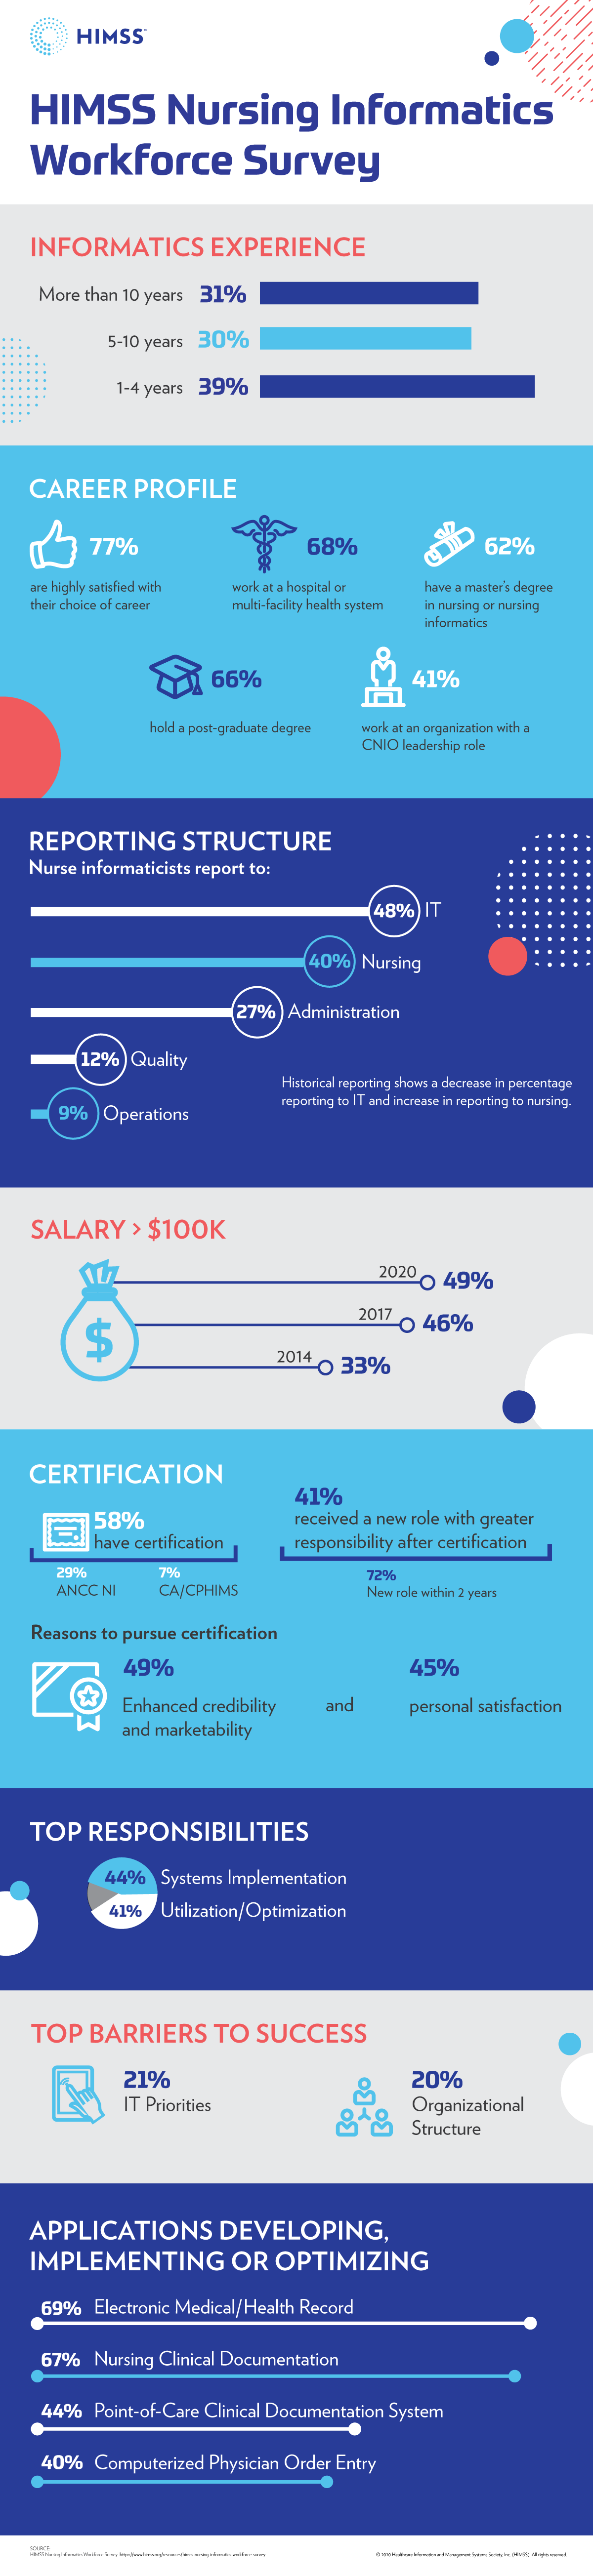 Infographic explaining nursing informatics workforce data